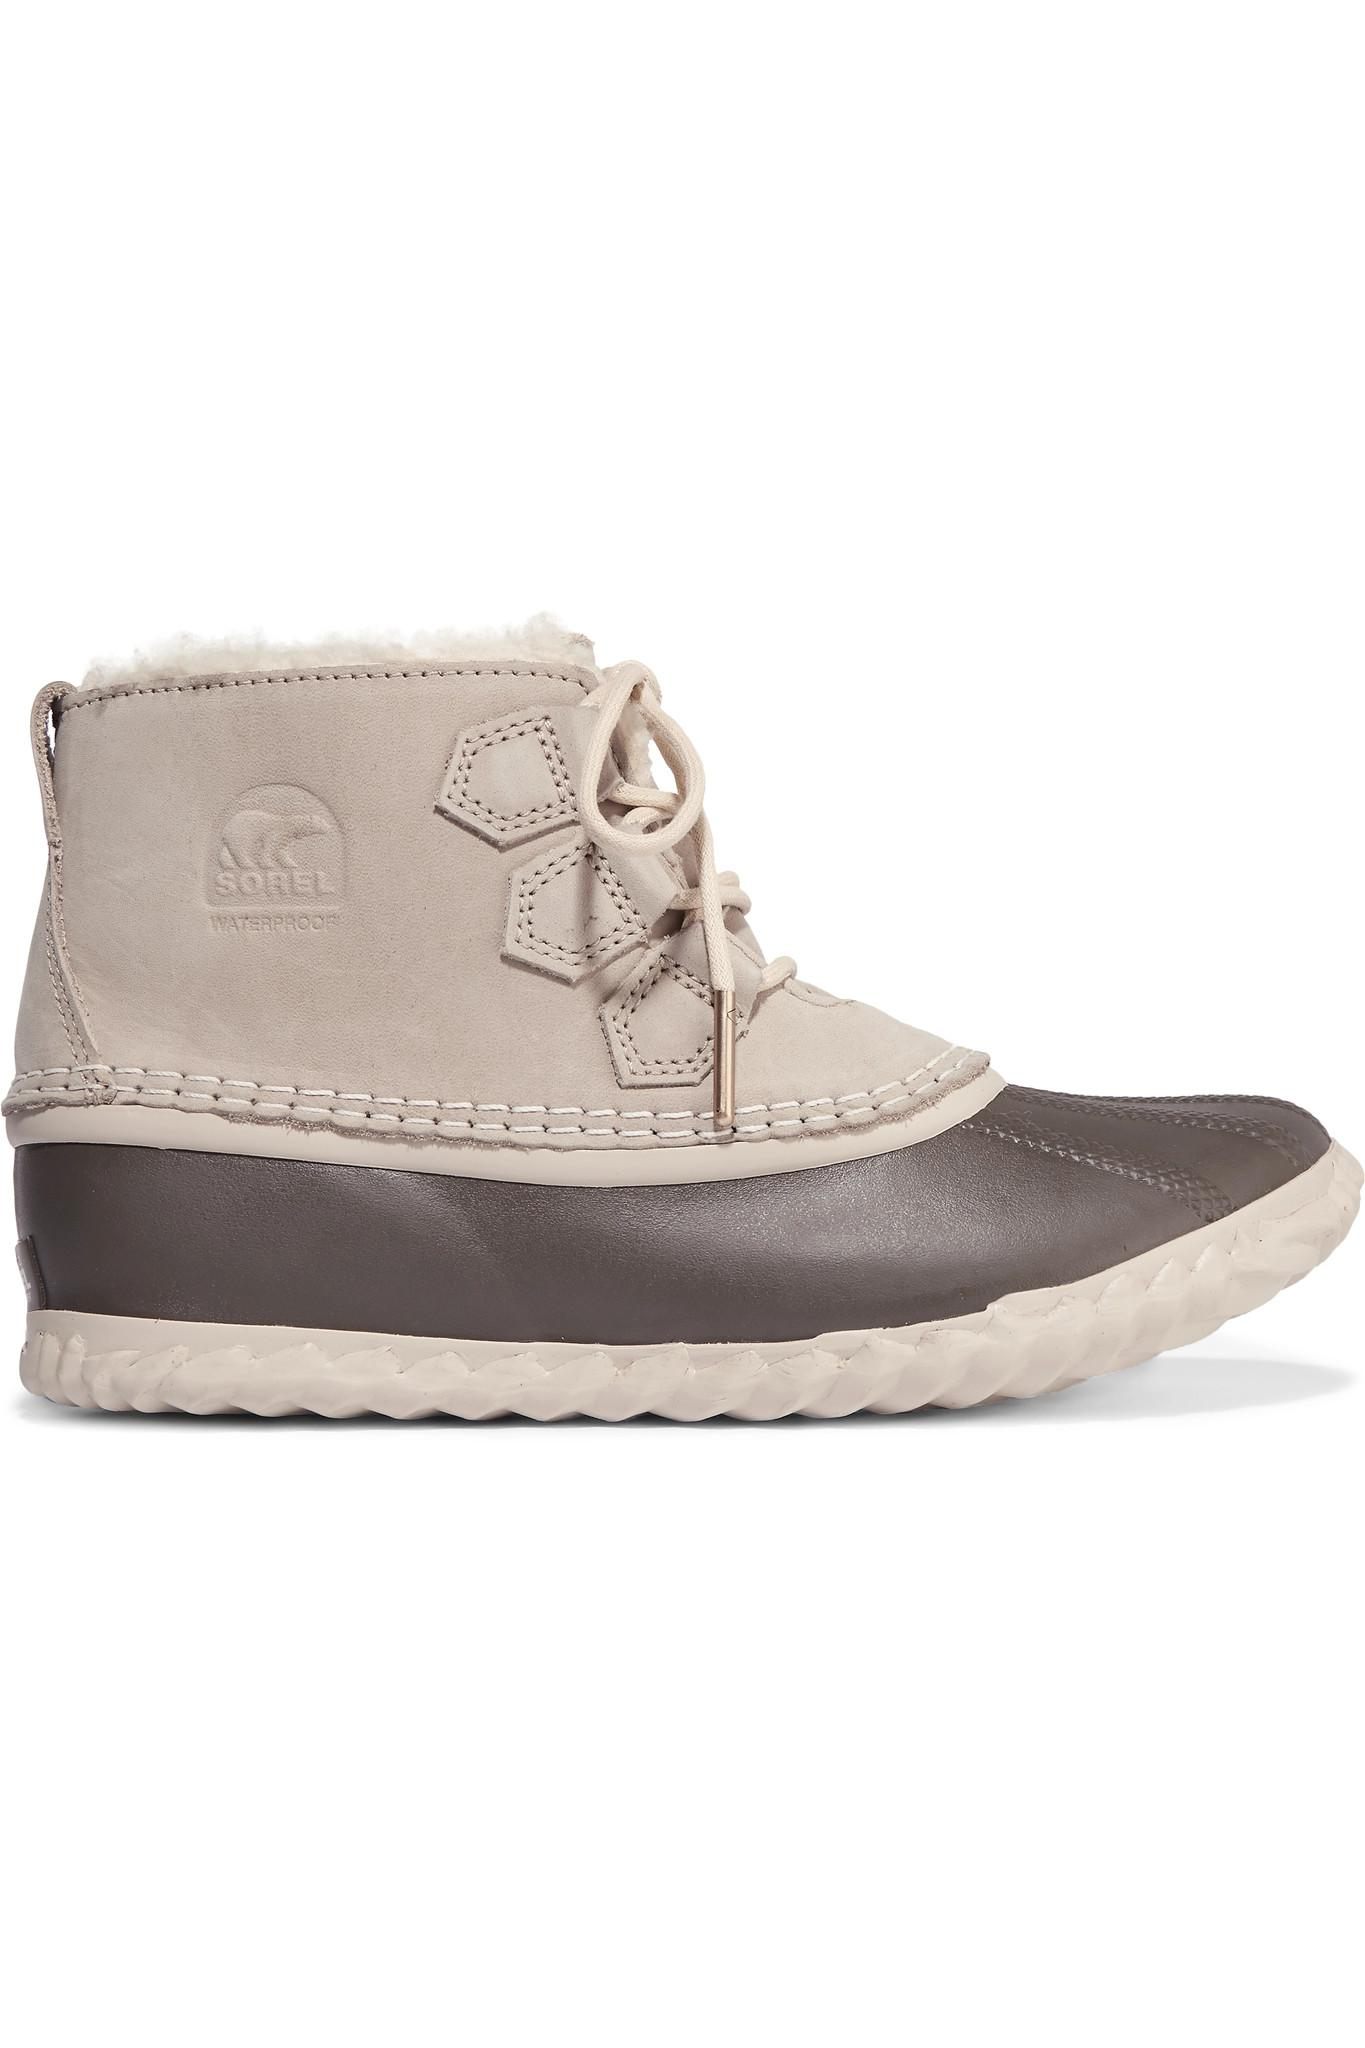 Sorel - Out N About - Bottines plates imperméables - Beige - Beige rz041